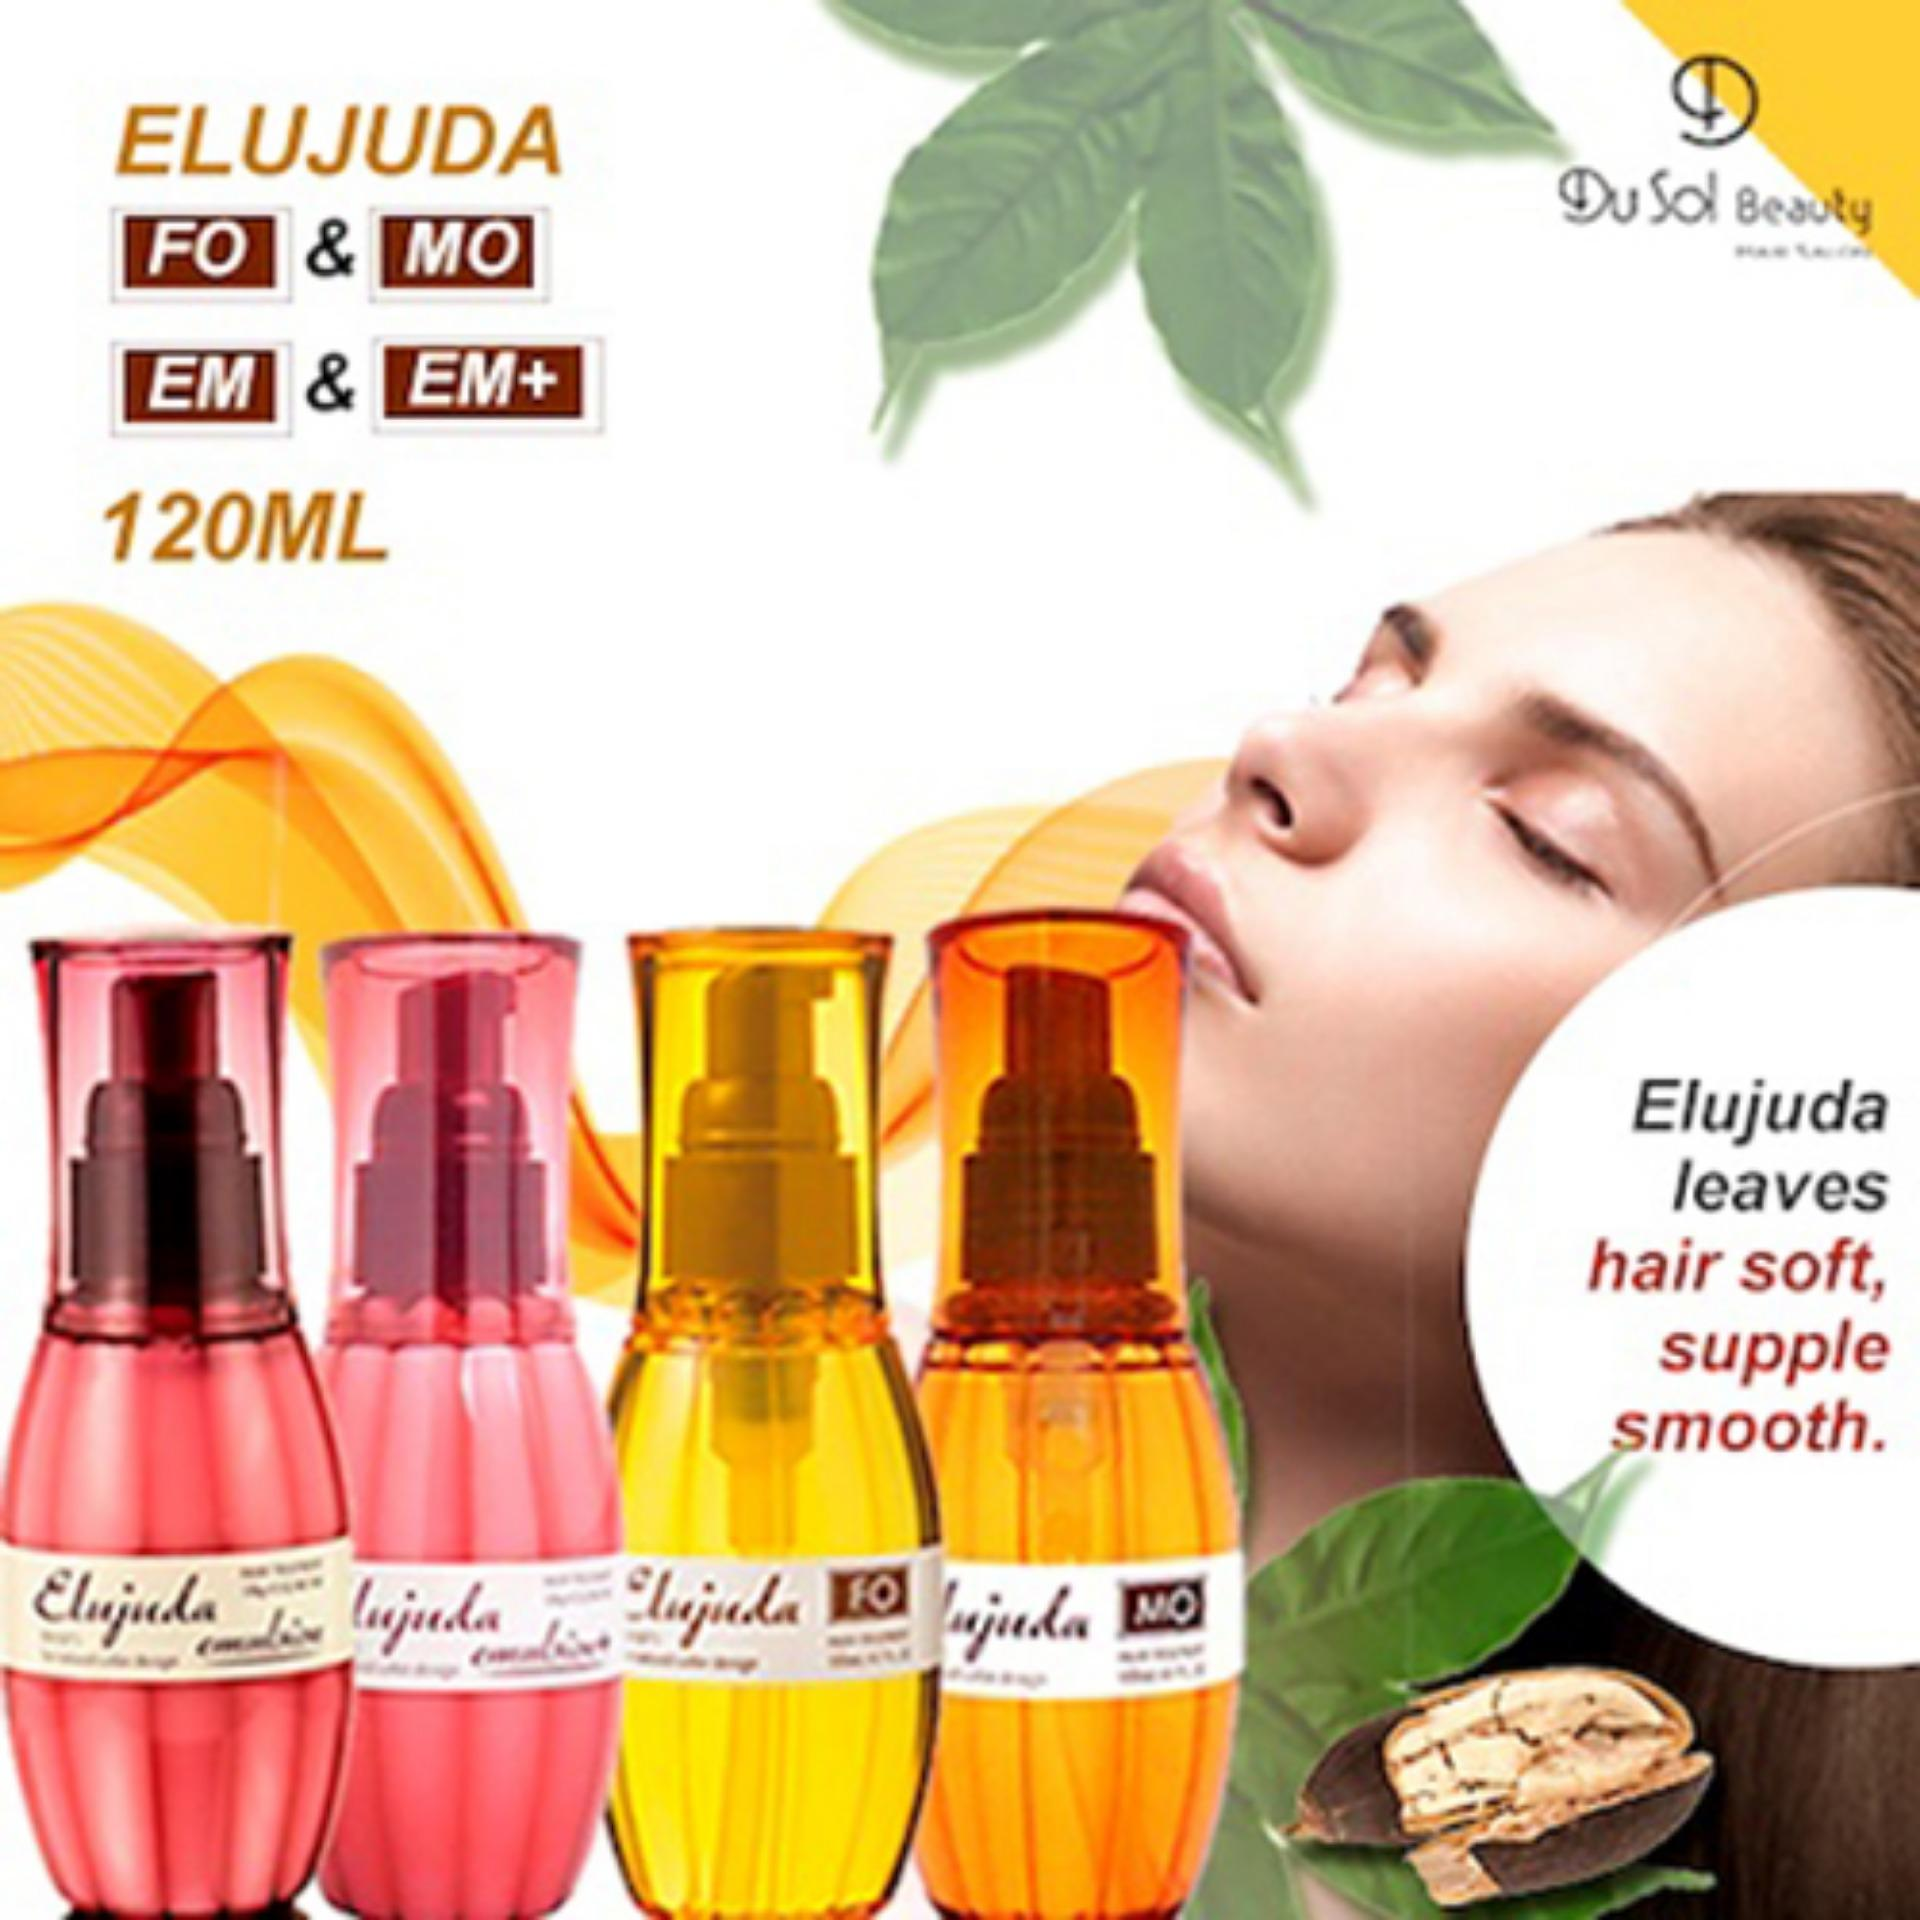 Compare Price Milbon Deesse S Elujuda Mo Hair Treatment 120Ml Deese On Singapore